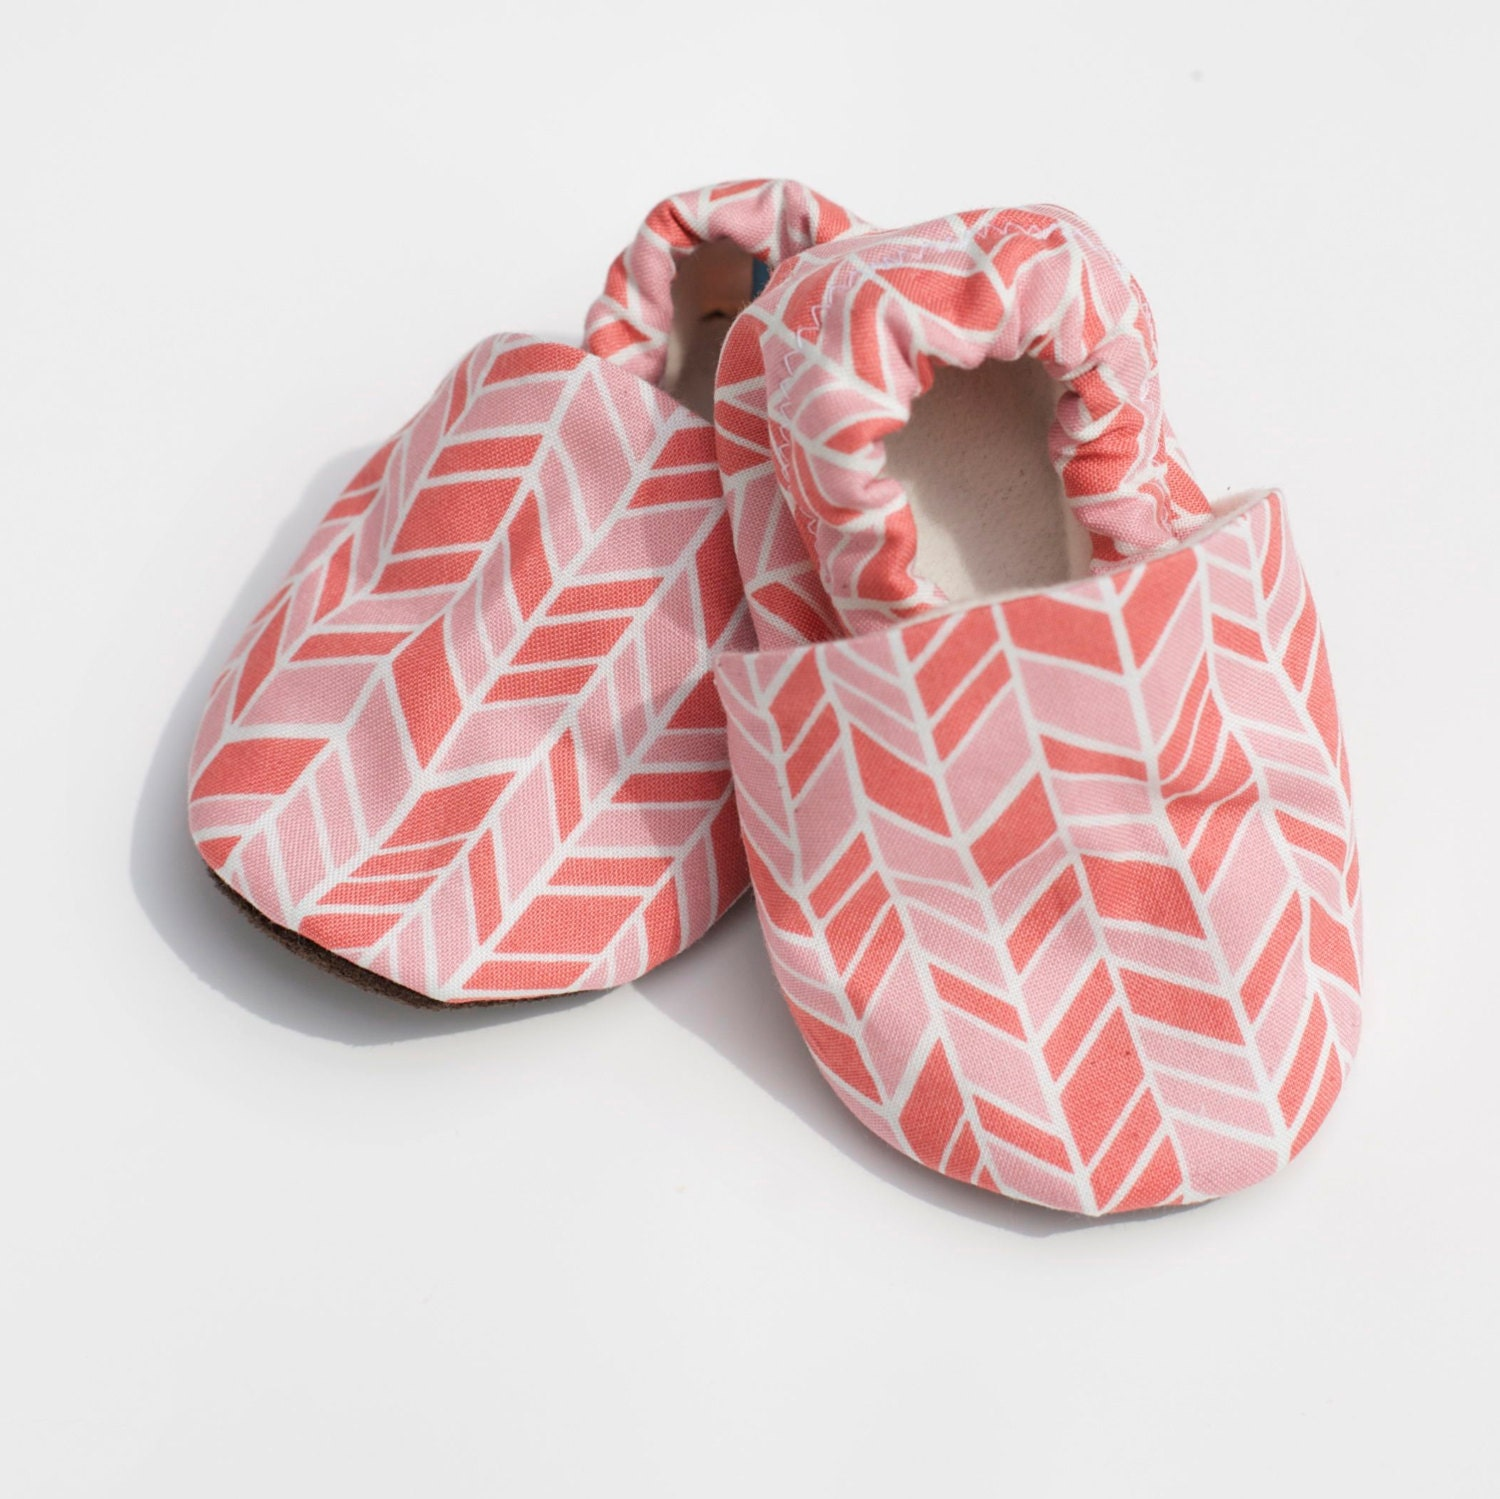 Baby Girl Shoes fset Chevron Pink and Coral 0 3 6 12 18